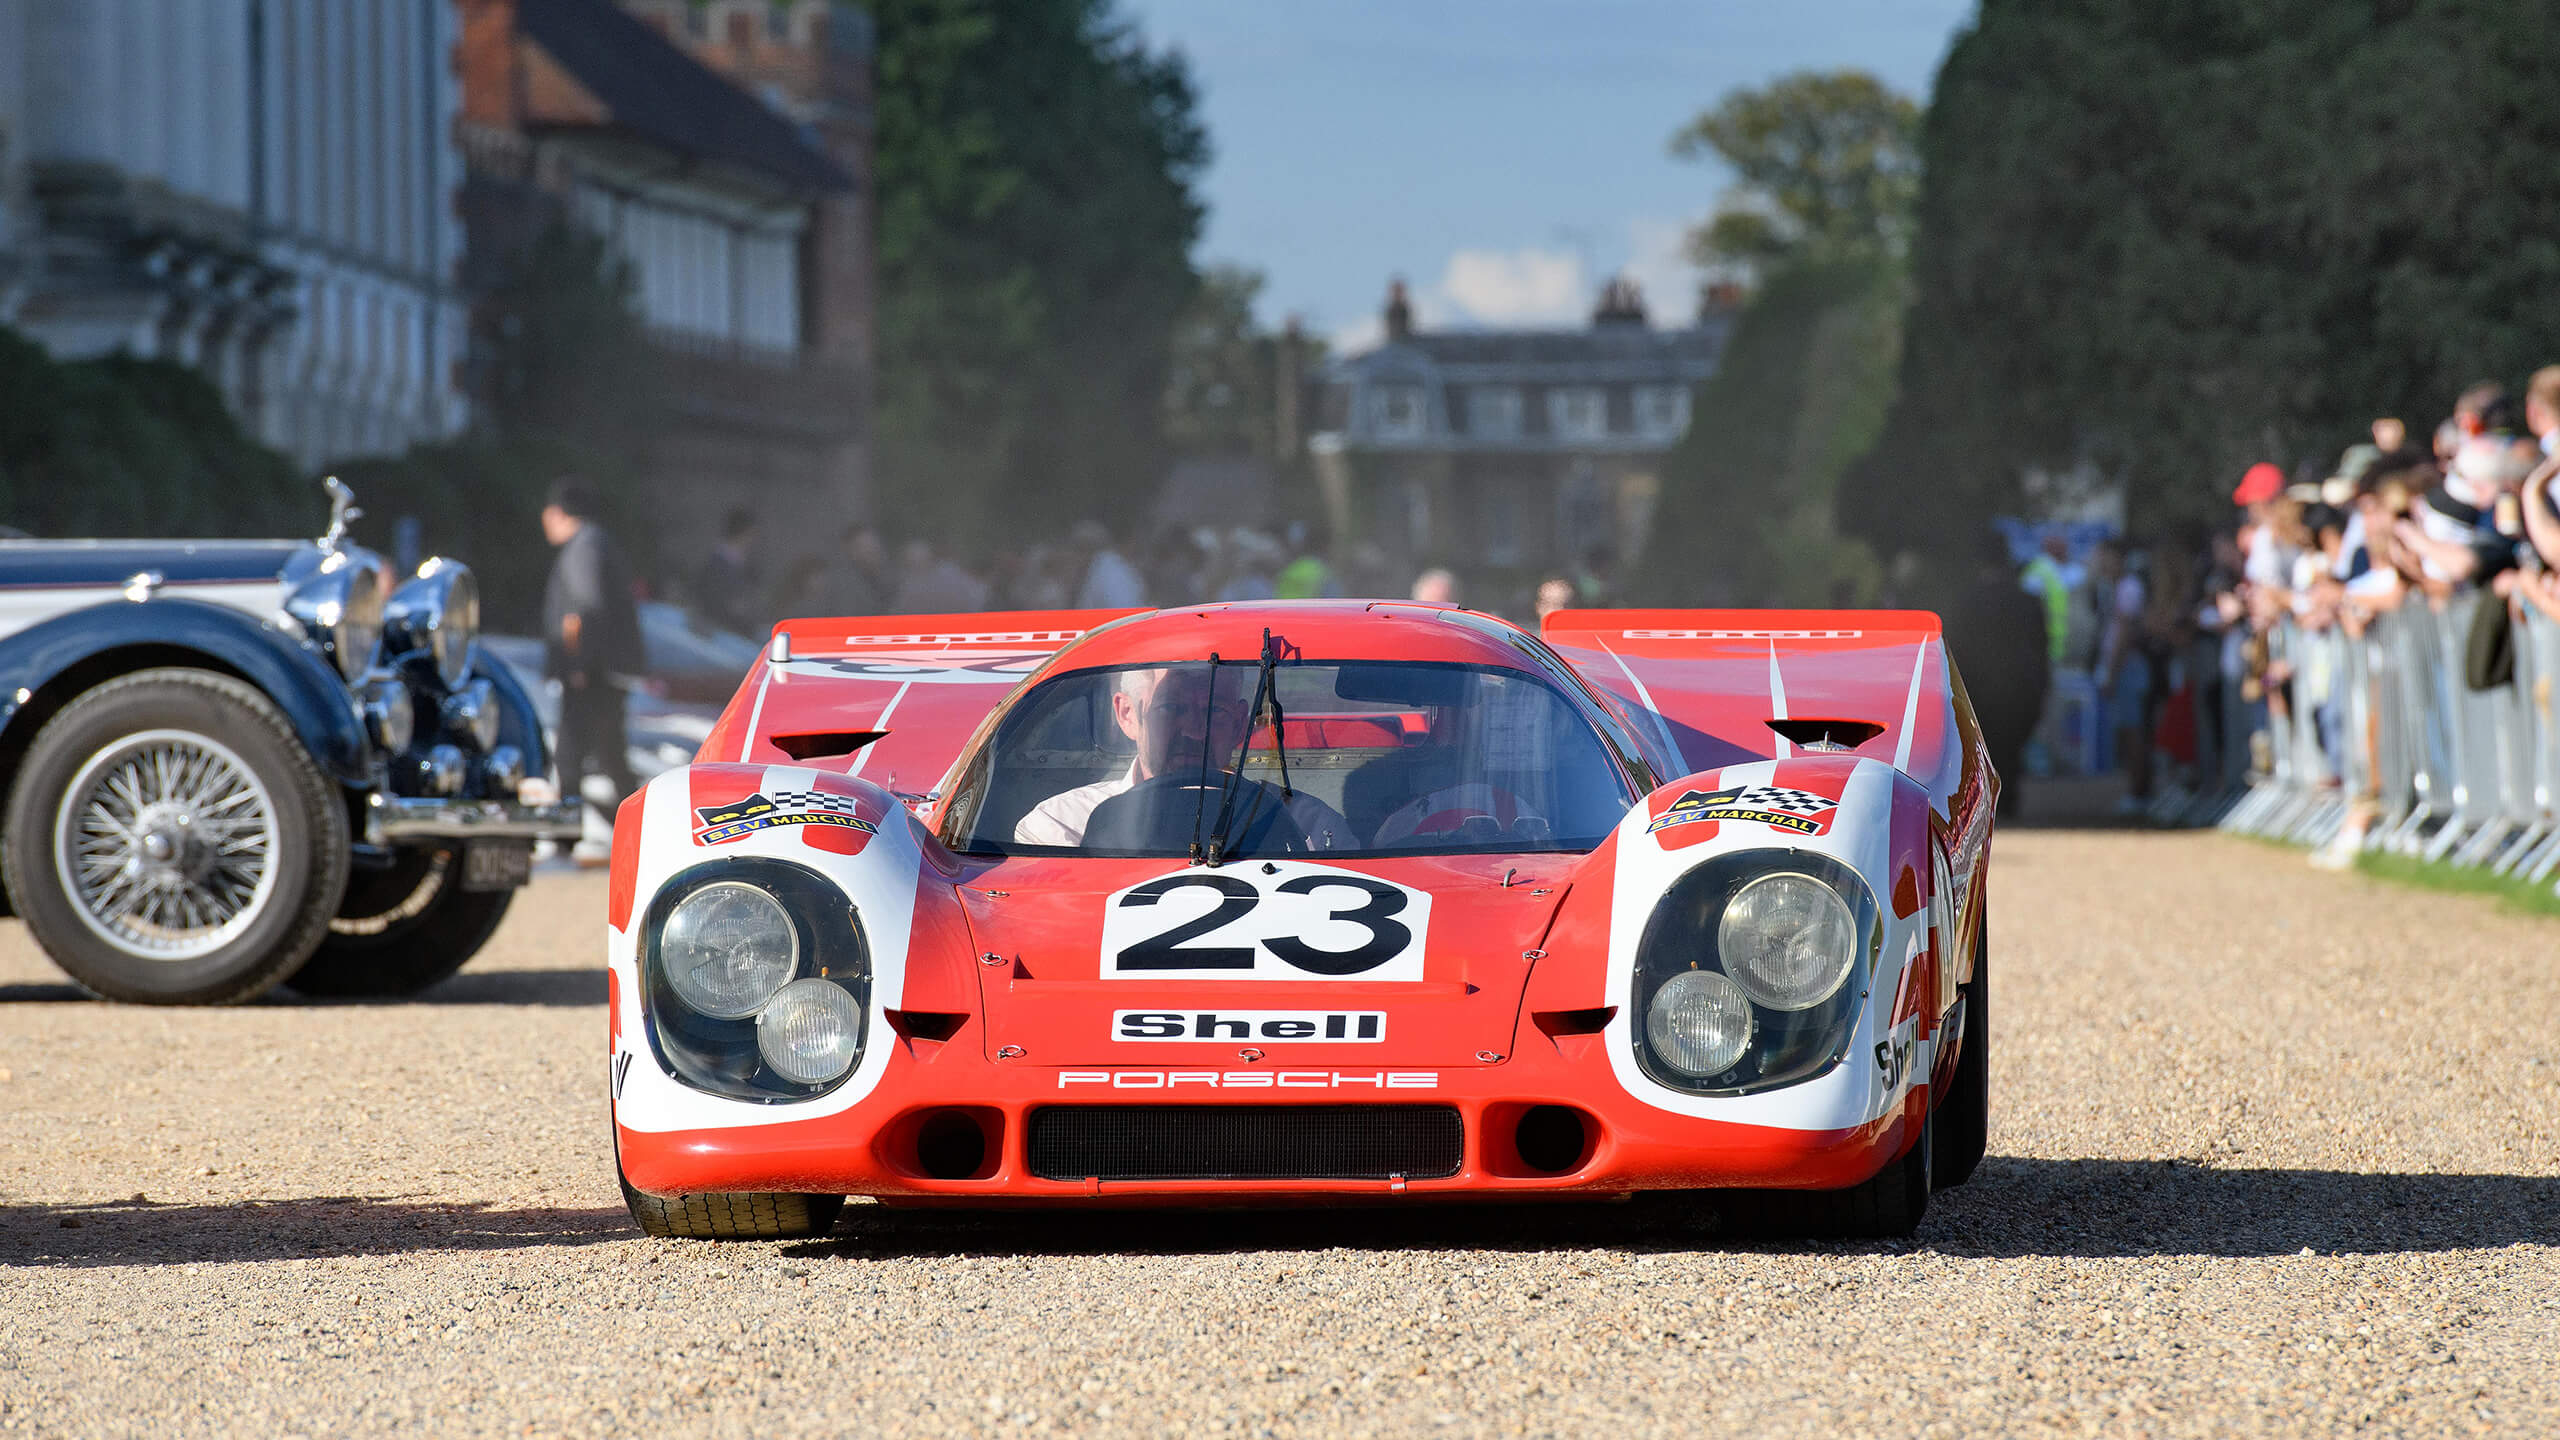 Le Mans-winning Porsche 917K triumphant at the 2020 Concours of Elegance